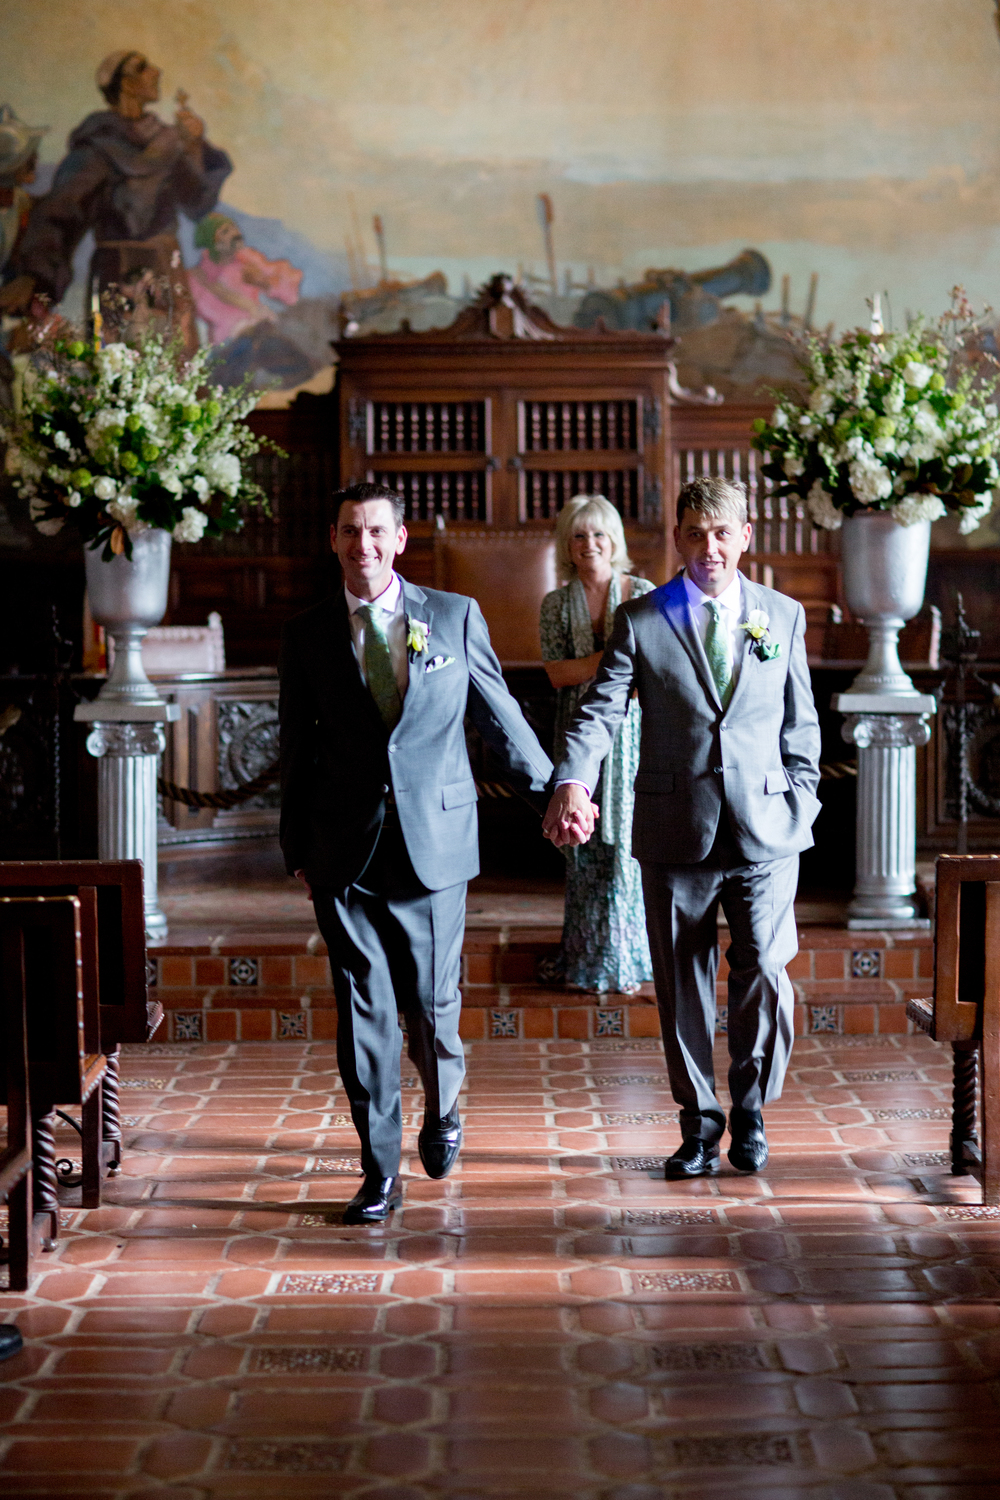 Wedding Ceremony at the Santa Barbara Courthouse | Miriam Lindbeck | Photography by Anna Costa